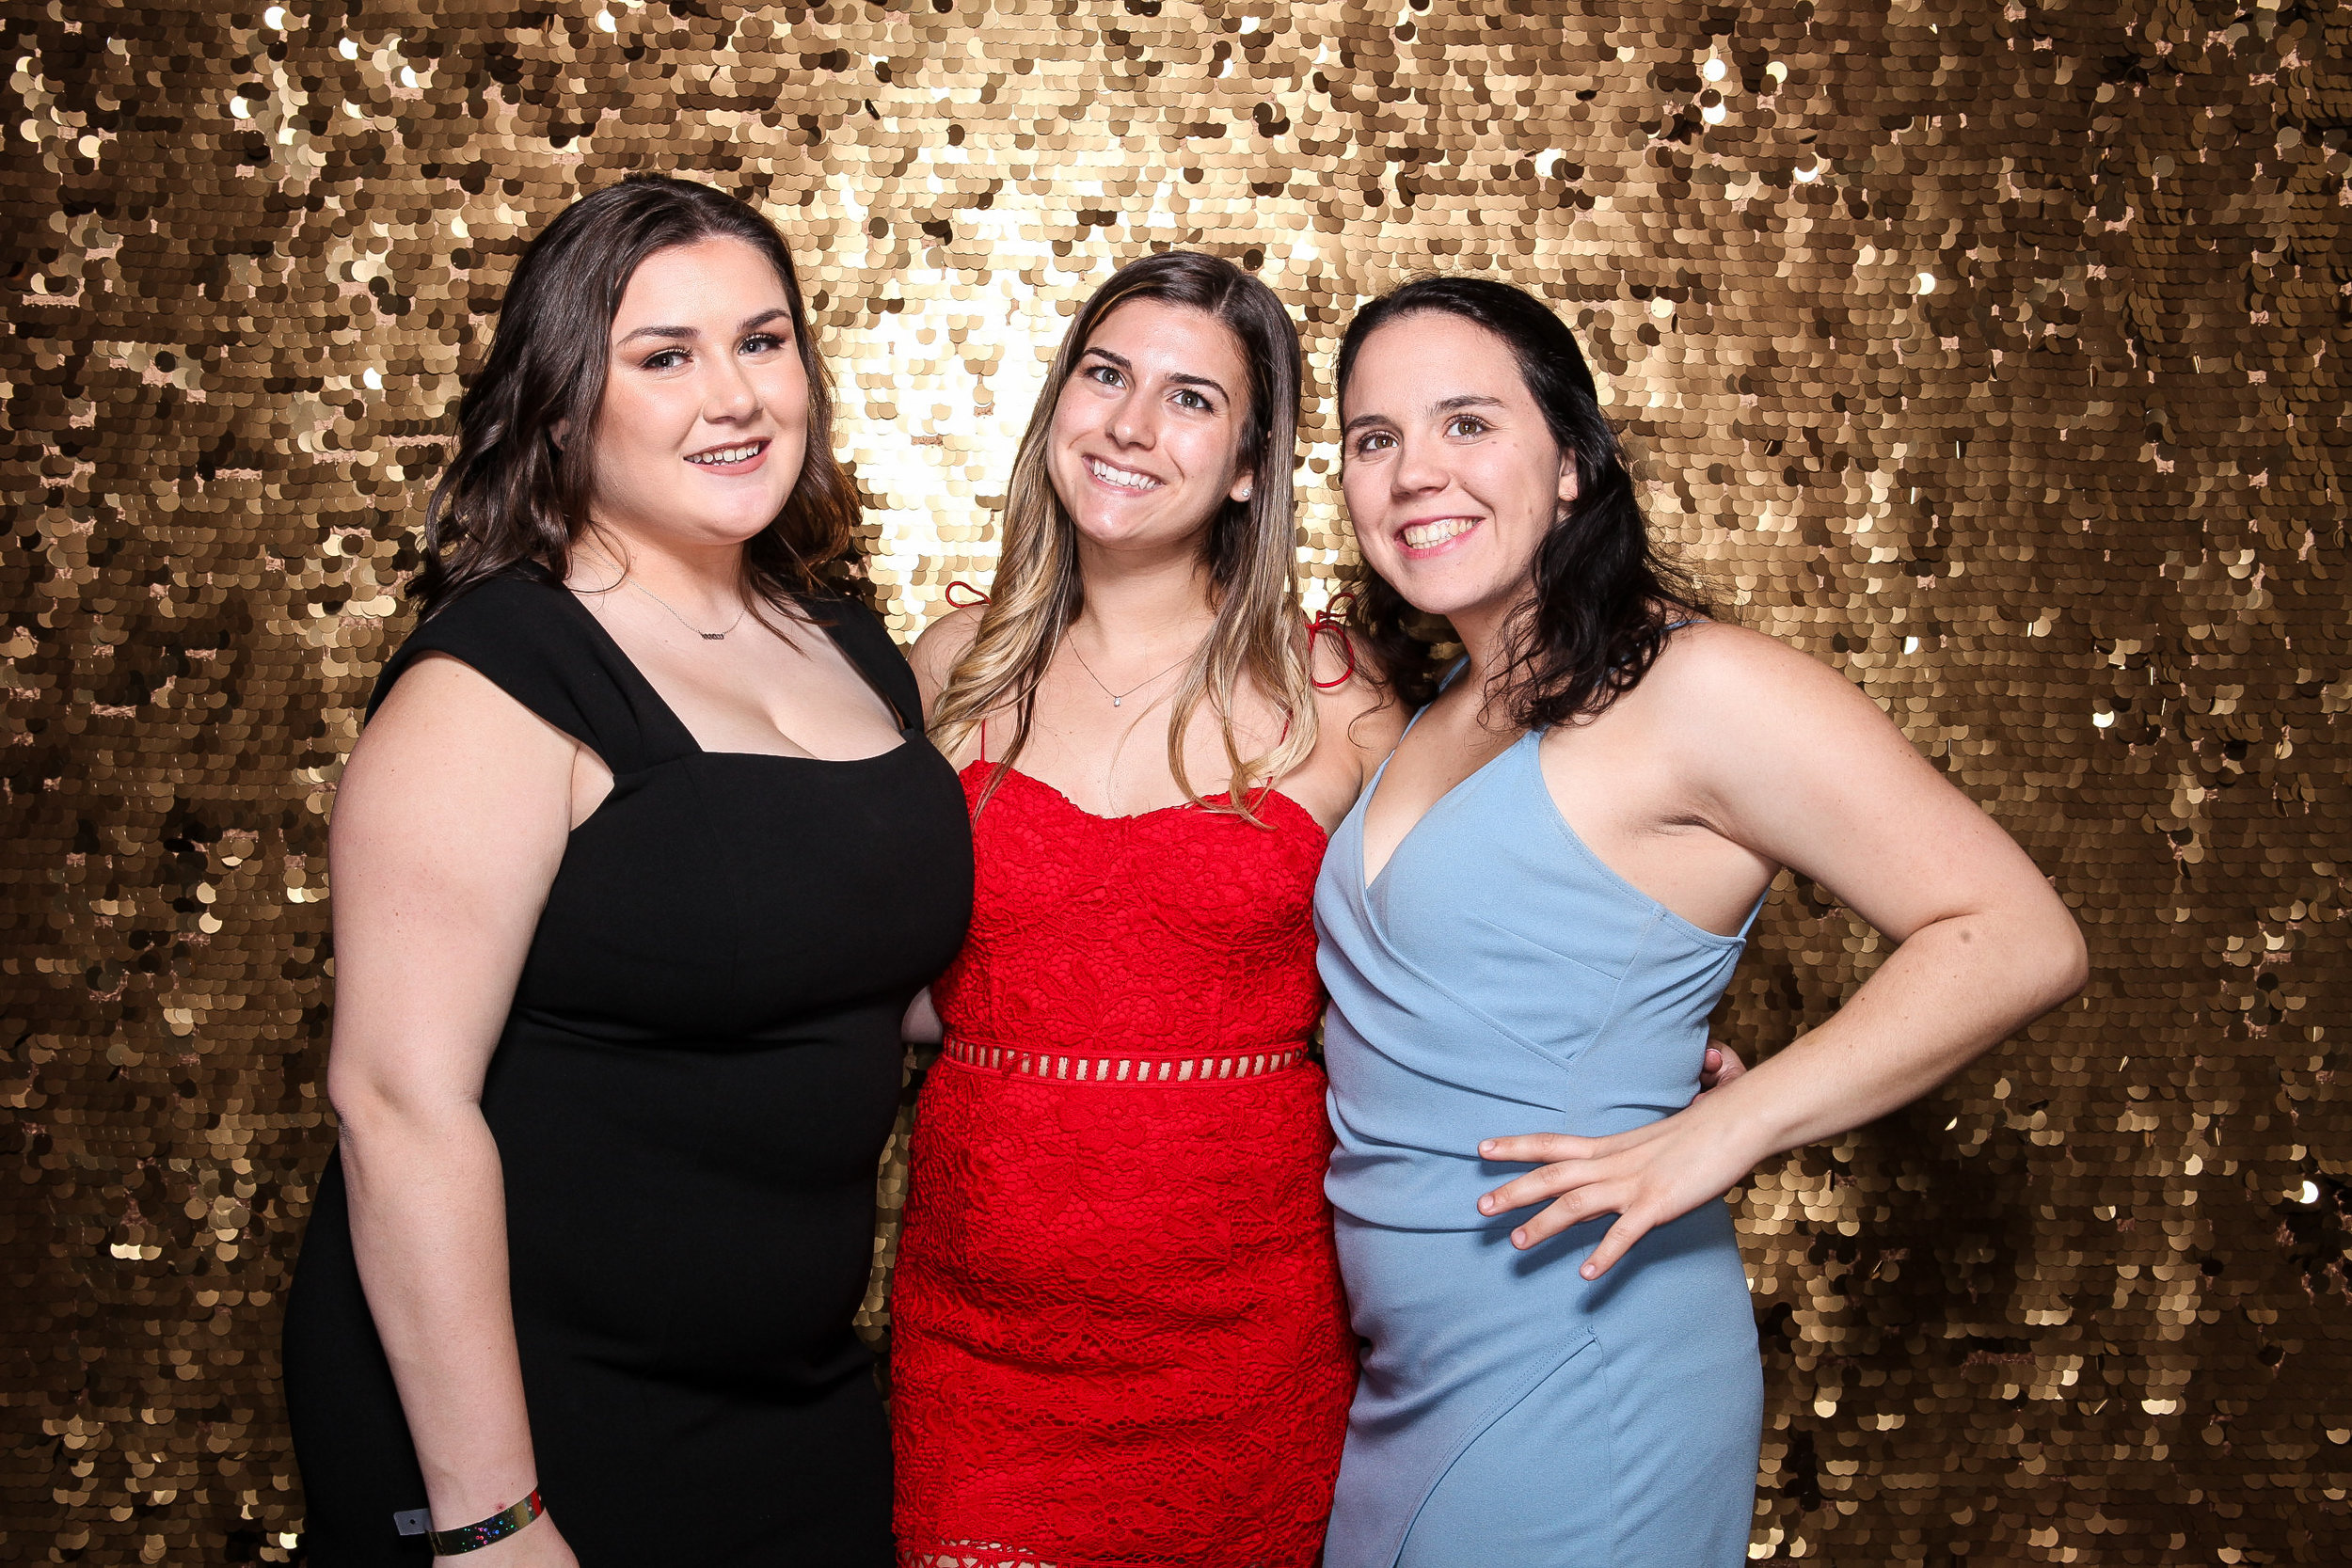 20190503_Adelphi_Senior_Formal-120.jpg